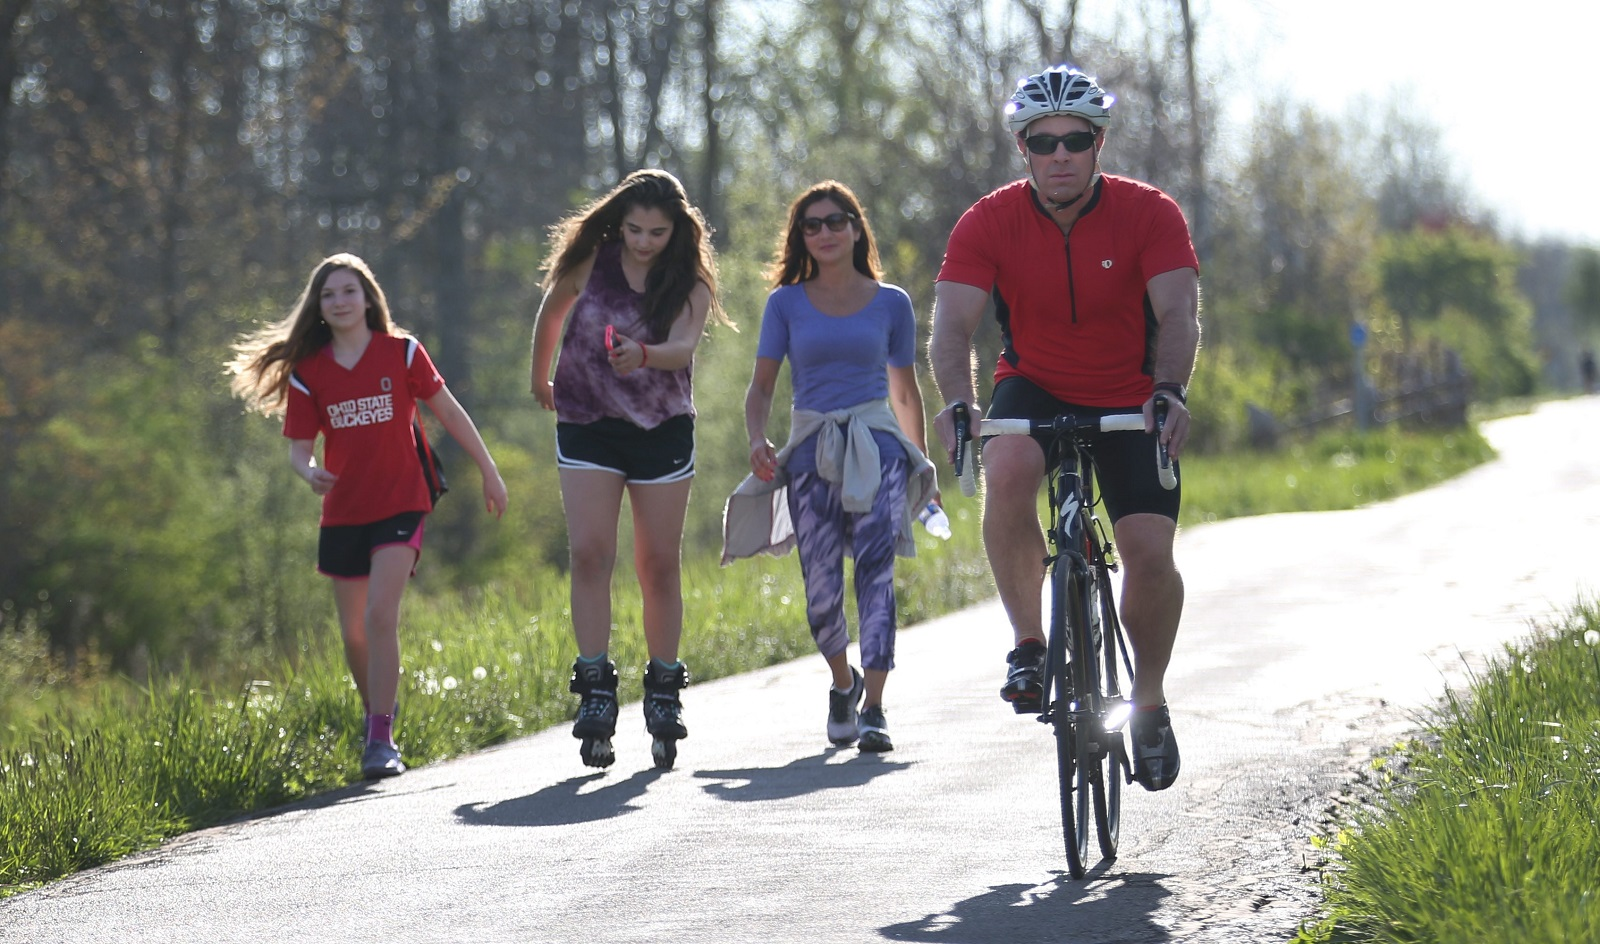 Dr. Marc Fineberg, right, shares part of the Clarence bike path Wednesday with Ella Petrulla, 11, left, her friend Eva Nuchereno, 11, and her friend's mother Norine Nuchereno. (Sharon Cantillon/Buffalo News)